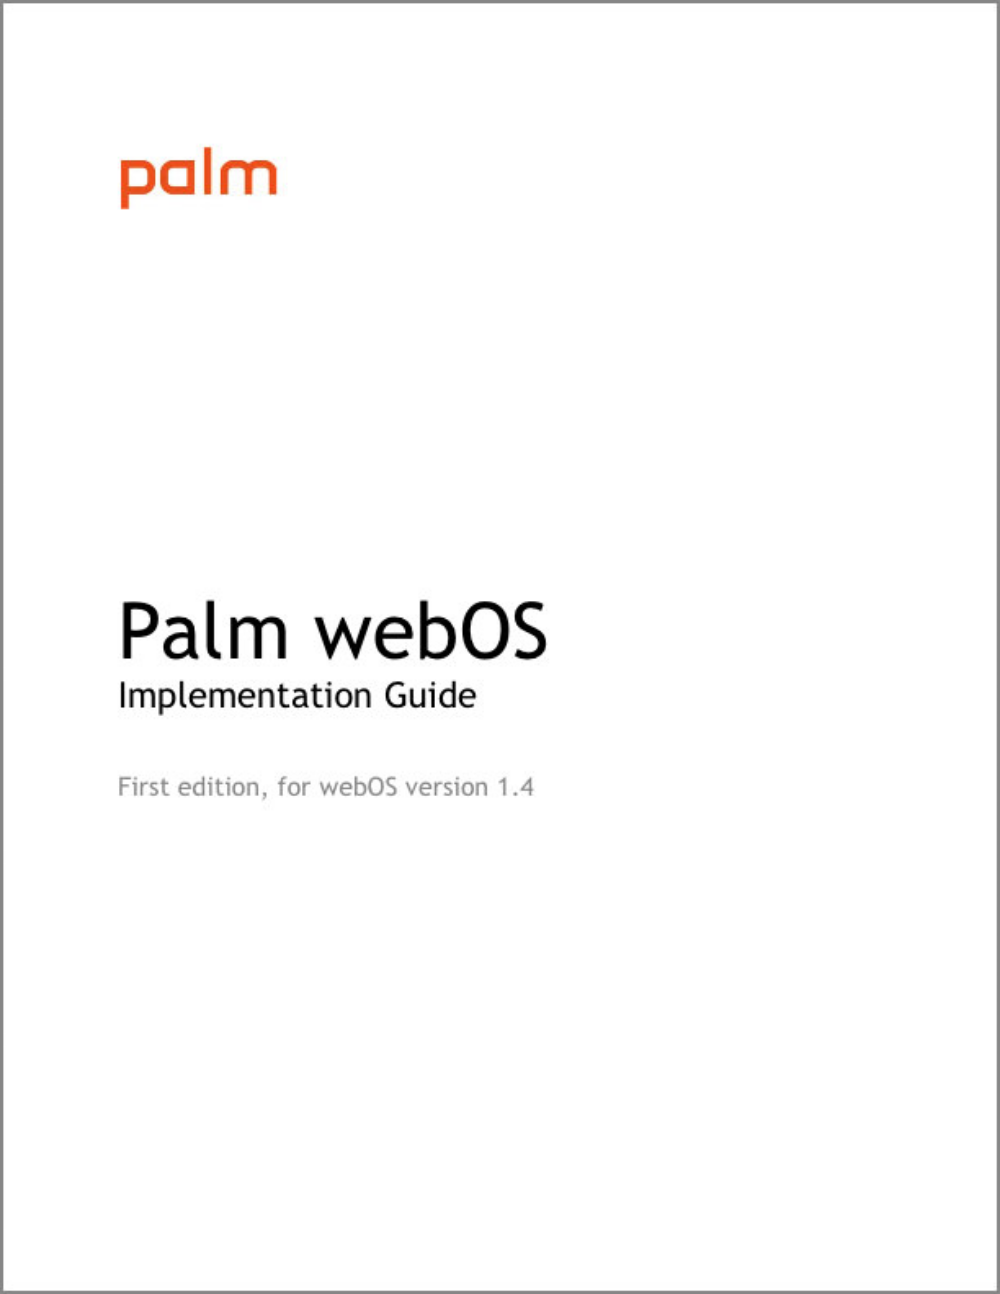 Palm webOS Implementation Guide  Hewlett-Packard  Palm webOS had incredible potential—an operating system built with open-source web technologies that could connect every kind of device, from smartphones to mainframe computers.  This technical manual for IT managers and system administrators provided best practices for deploying, configuring and managing Palm webOS smartphones in enterprise environments.    READ MORE >>